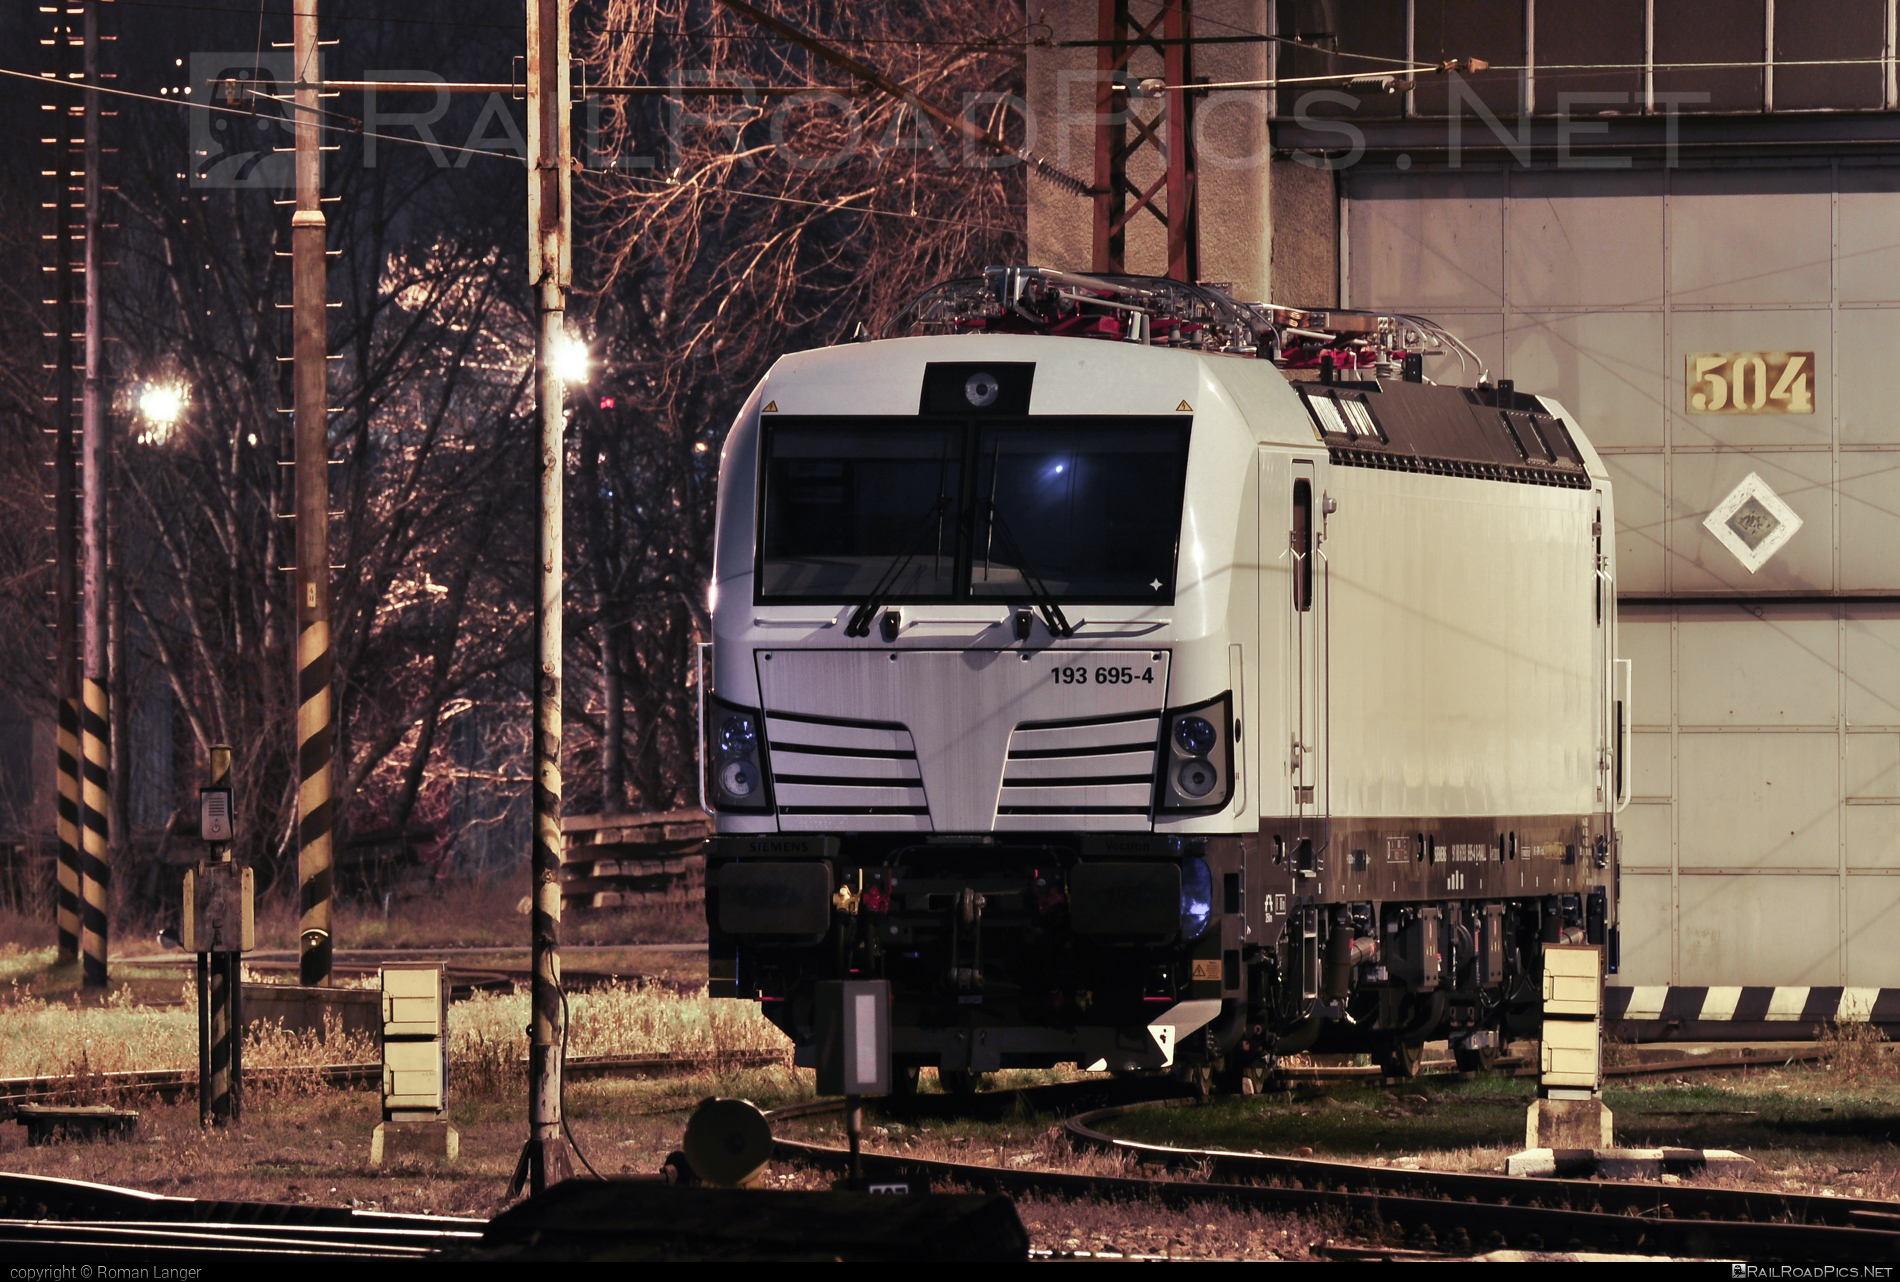 Siemens Vectron MS - 193 695-4 operated by Unknown #RollingStockLease #RollingStockLeaseSro #raill #siemens #siemensvectron #siemensvectronms #vectron #vectronms